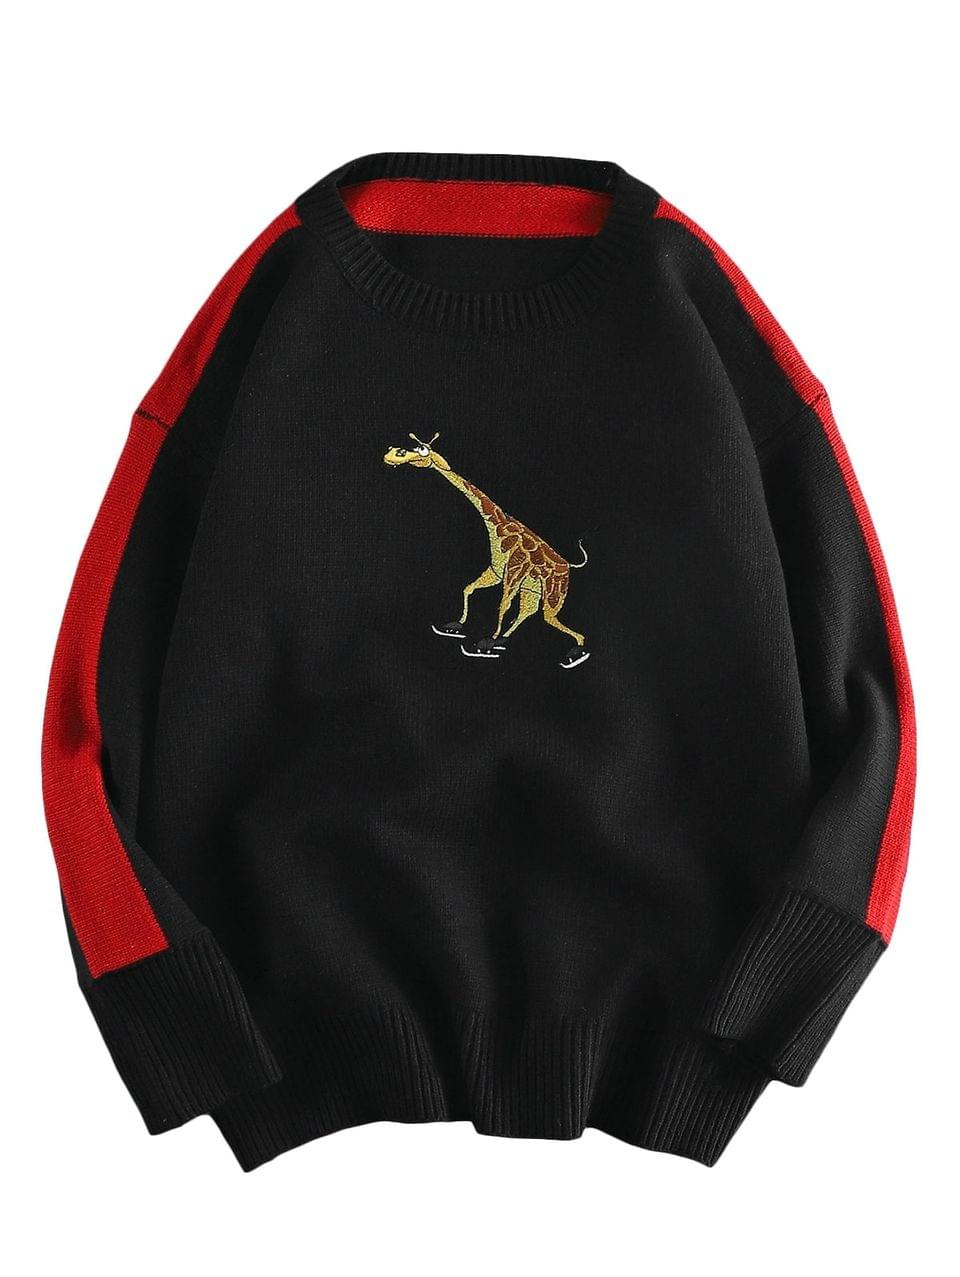 Men's Giraffe Embroidered Casual Pullover Sweater - Black 2xl